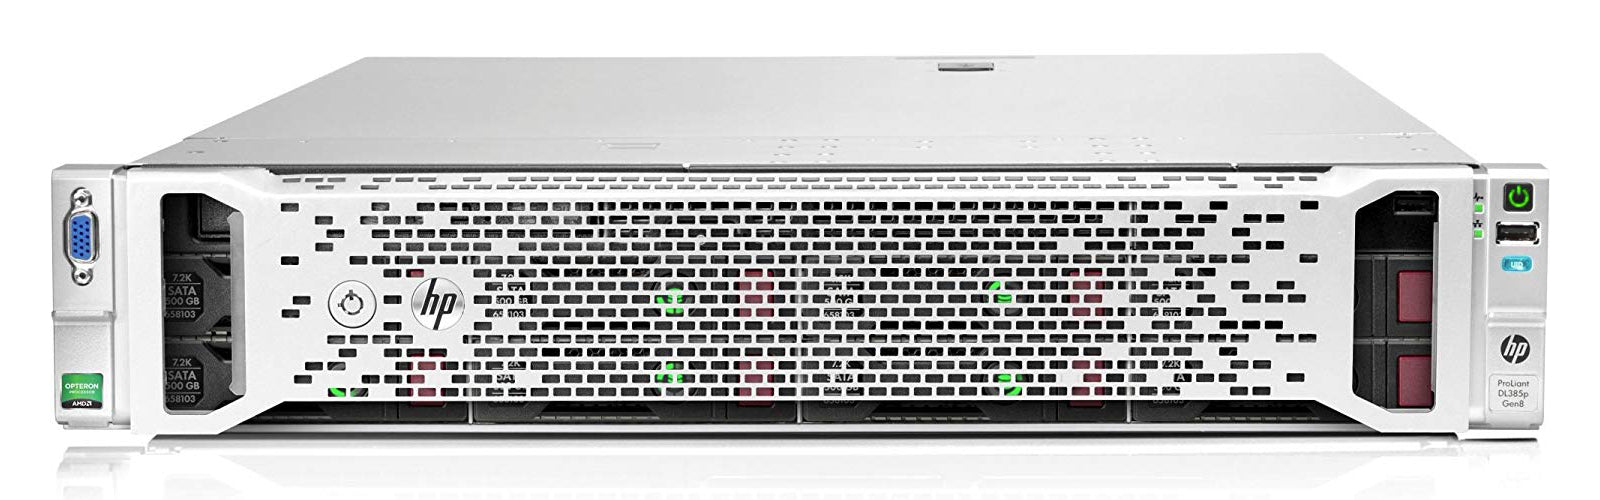 HPE ProLiant DL385p Gen8 CTO Server